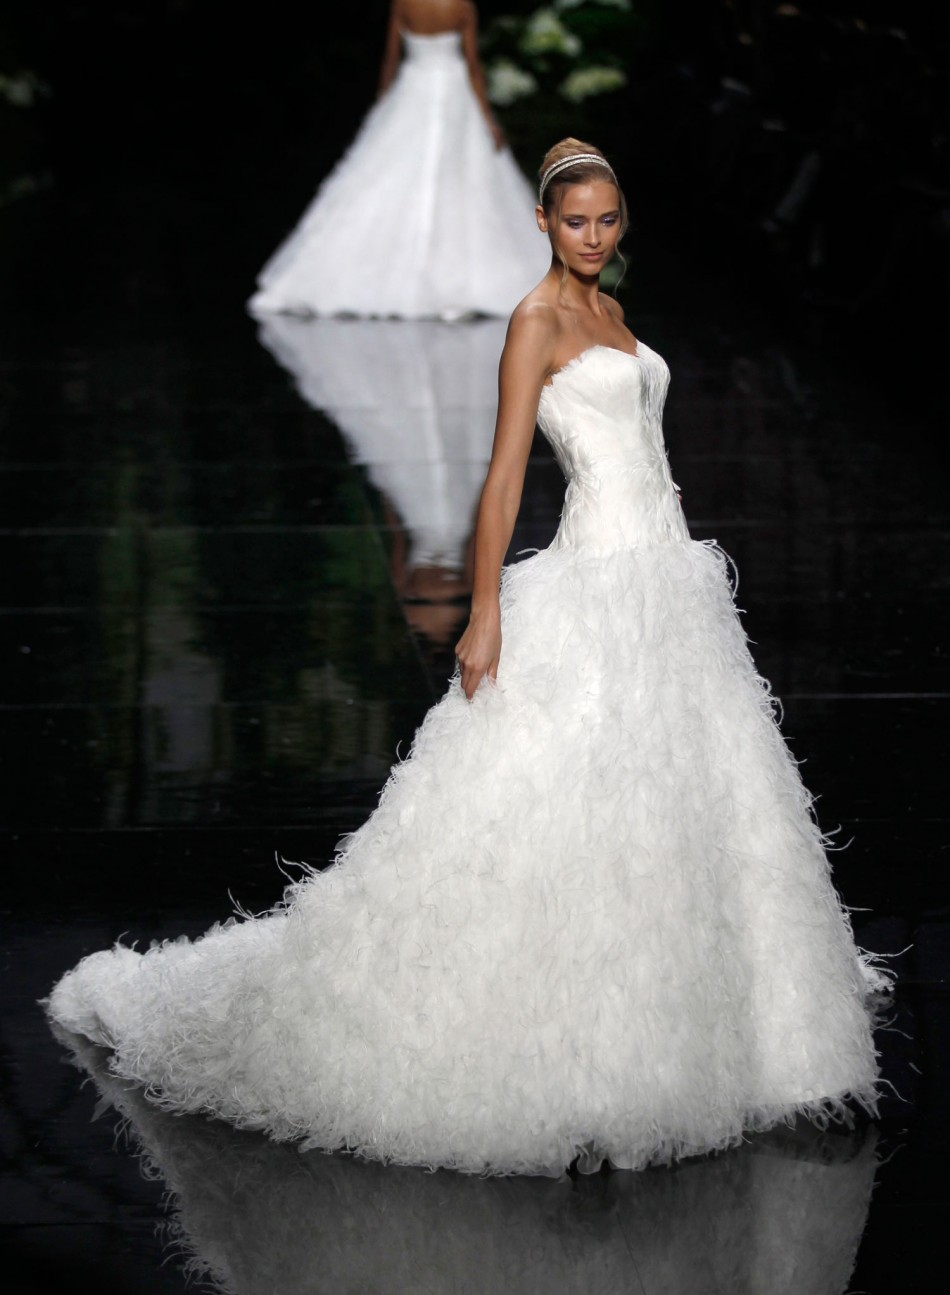 Elie Saab for Pronovias: Sumptuous Gowns Displayed at Barcelona ...